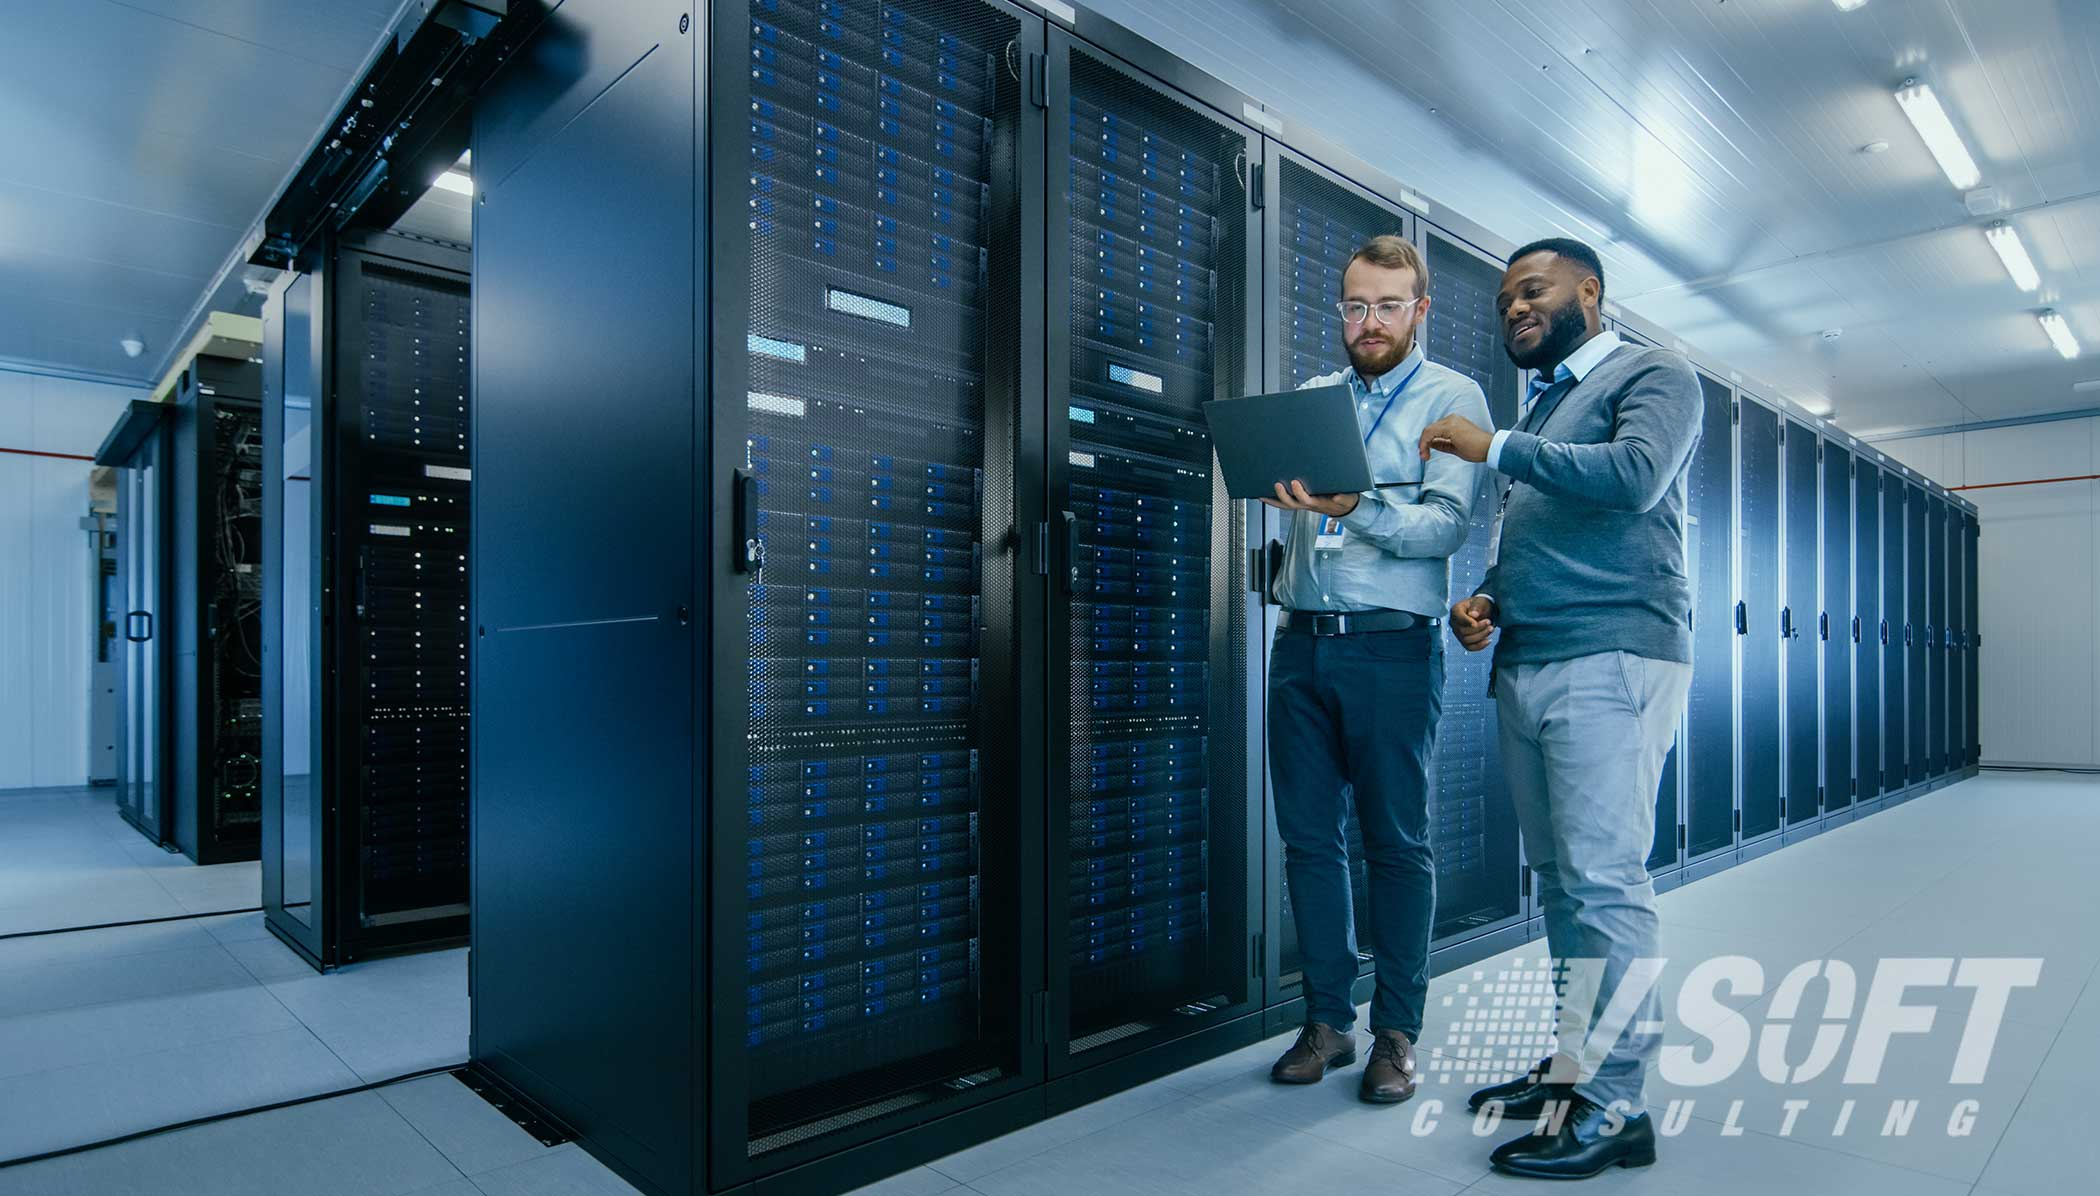 IT Team working in data center